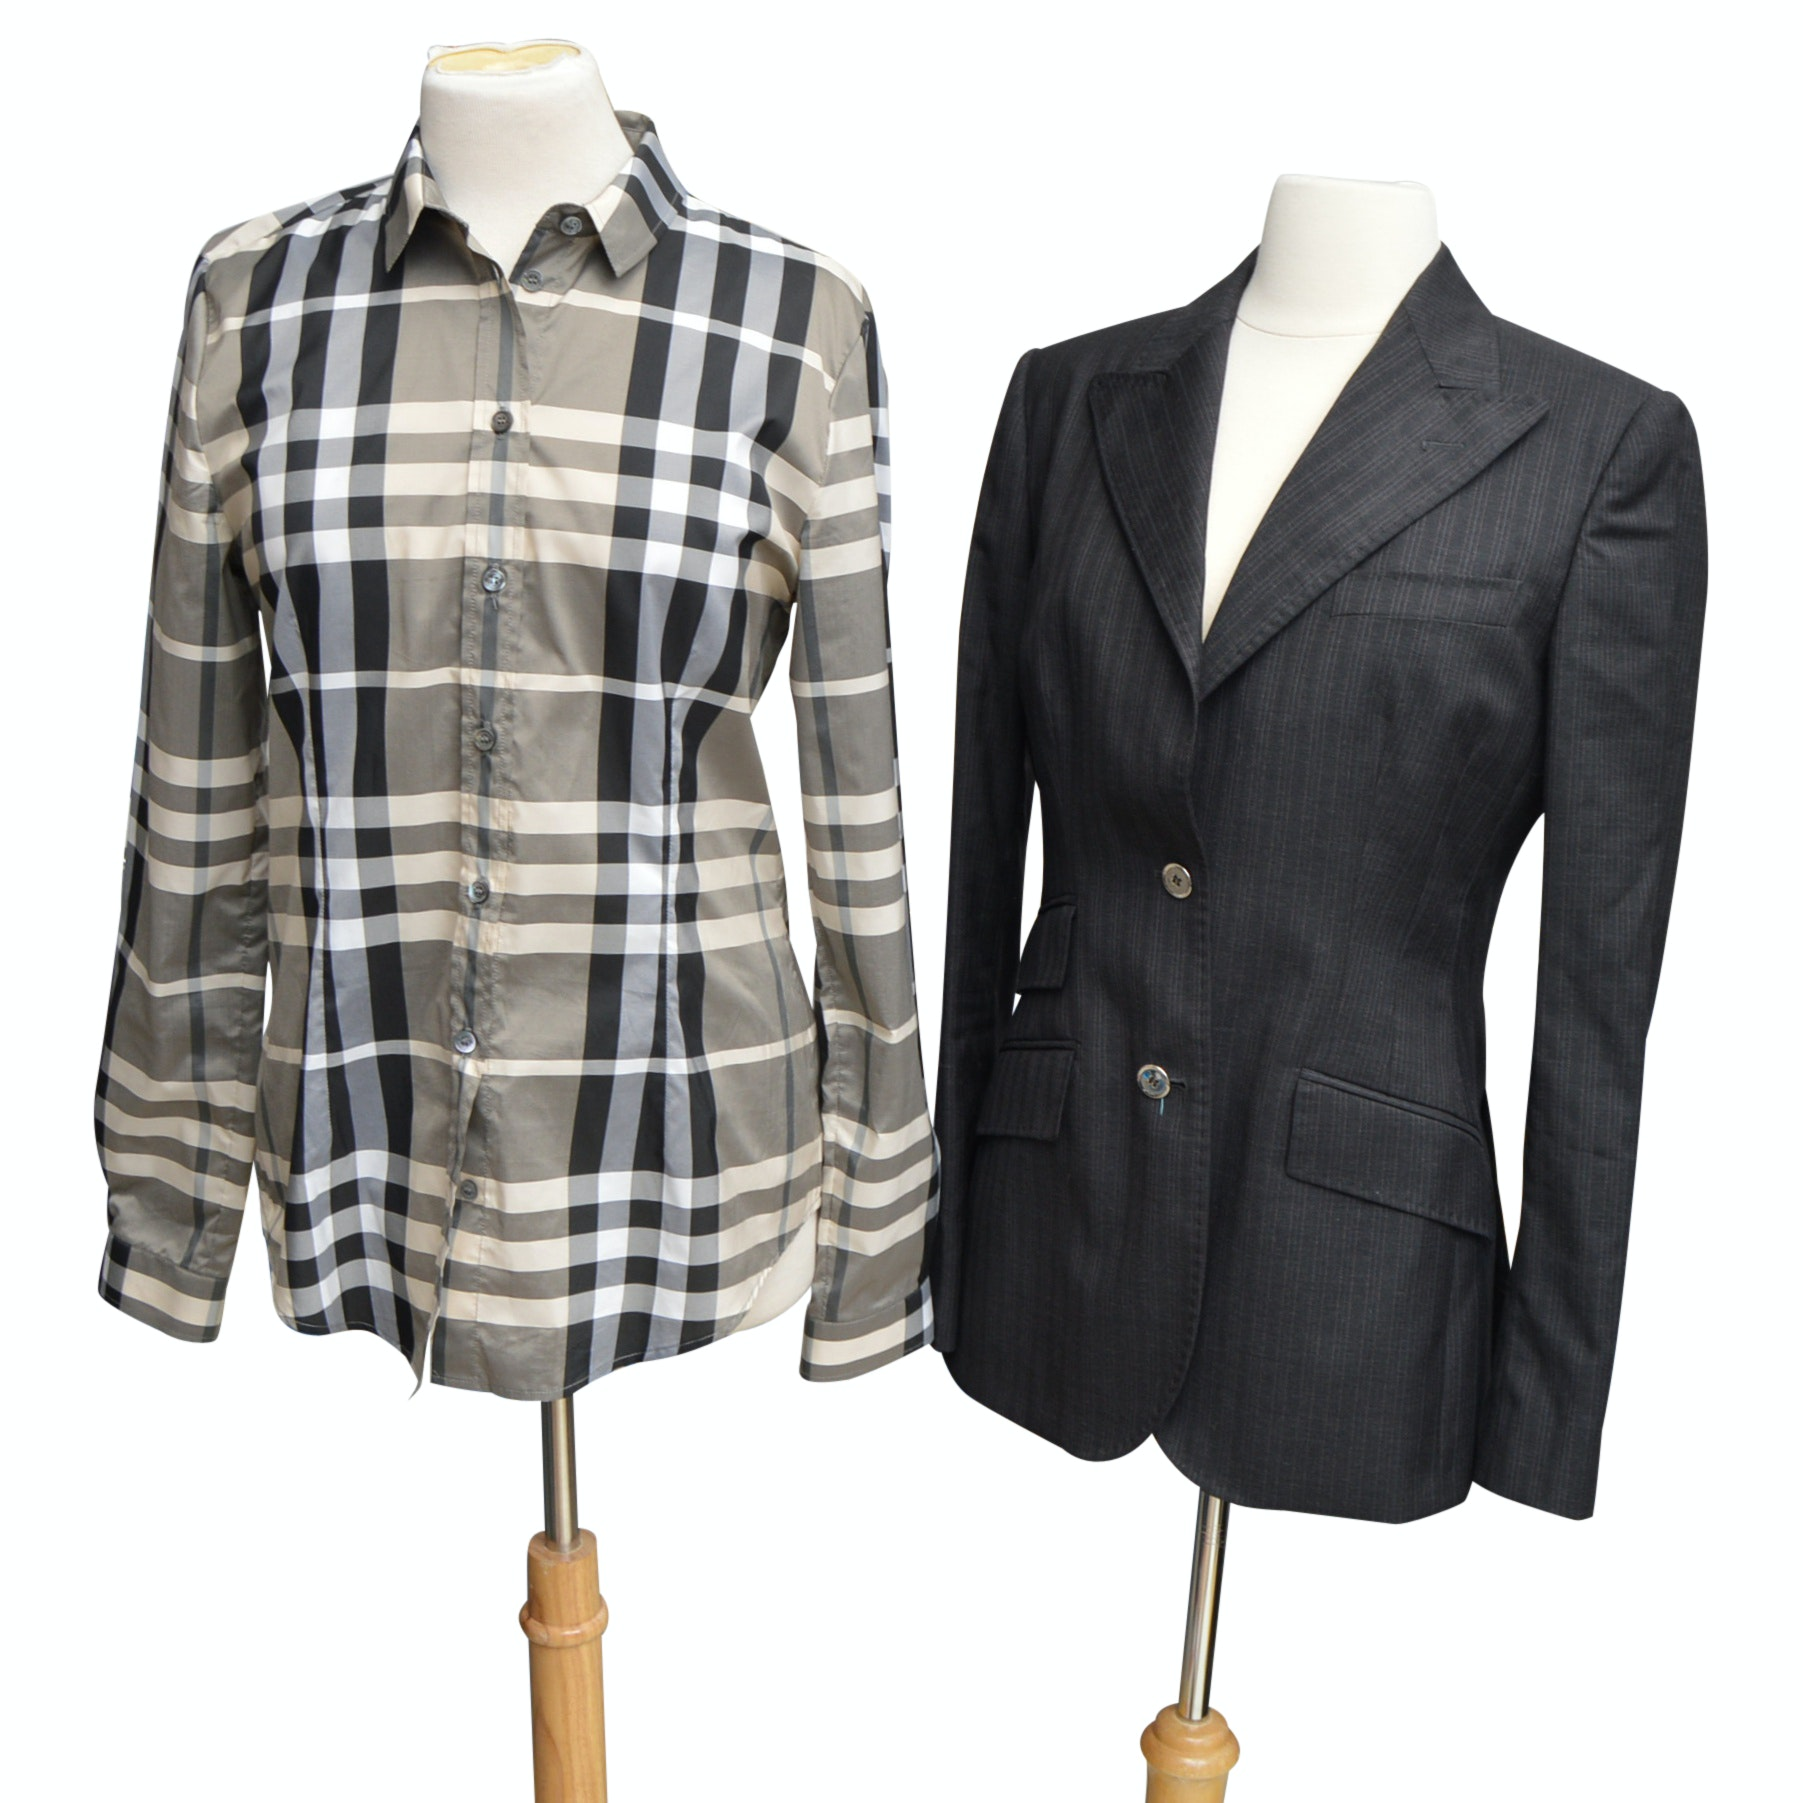 Burberry Blouse and Dolce & Gabbana Pants Suit